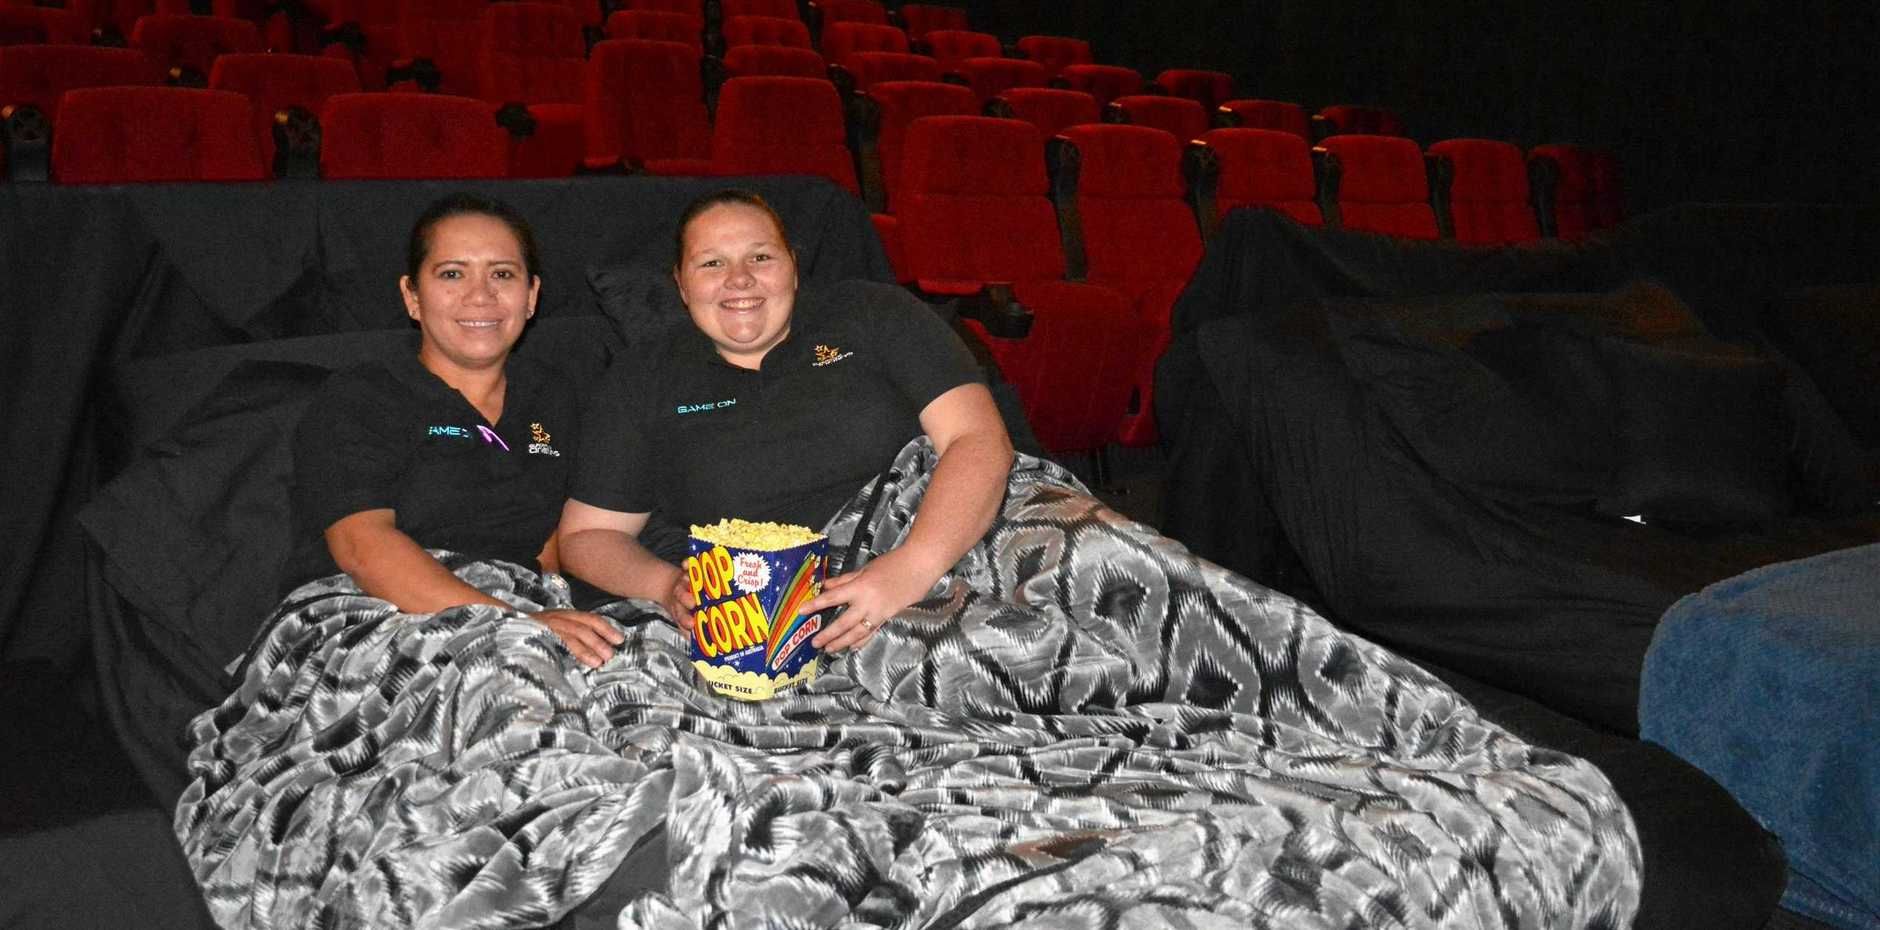 Gladstone Cinemas staff Joanne Tierney and Samantha Roberts try out the new big screen cinema beds.